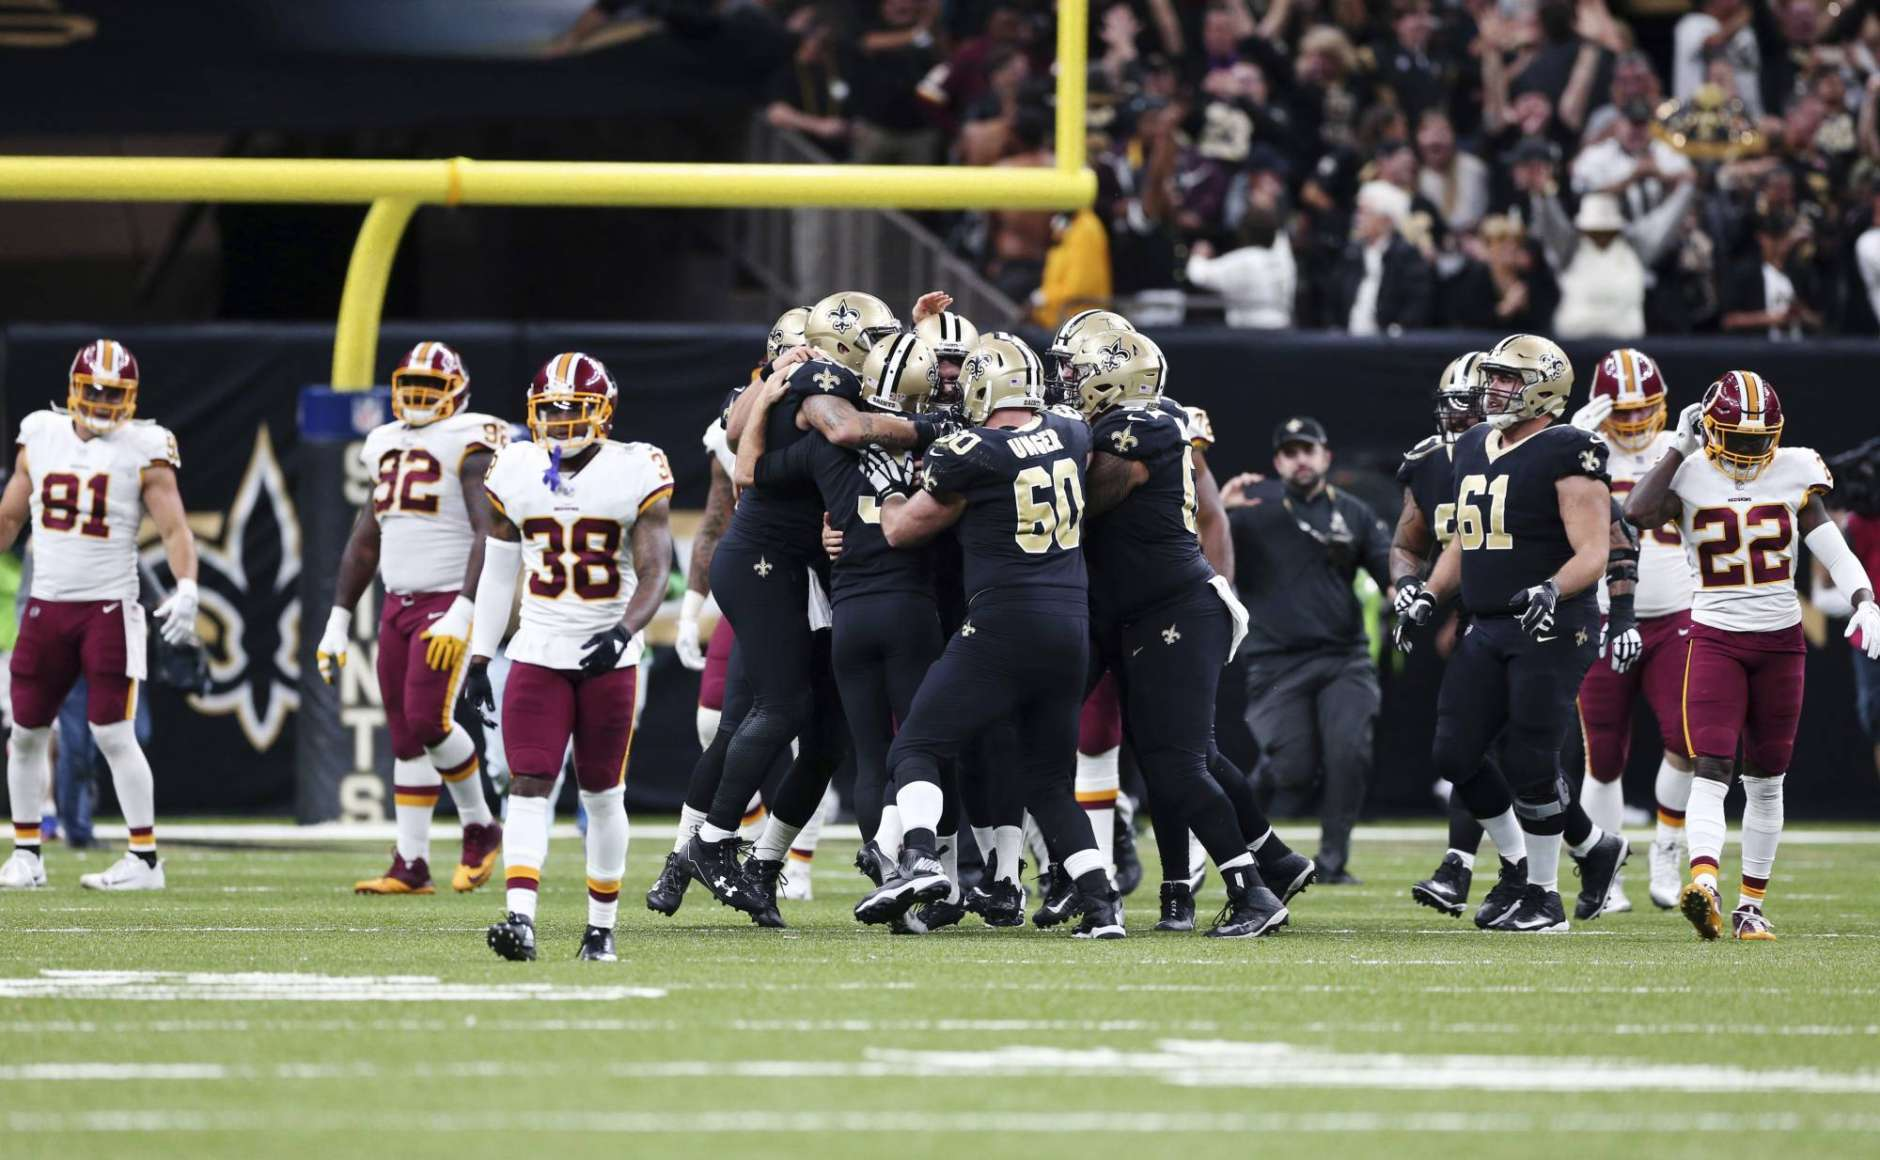 New Orleans Saints mob kicker Wil Lutz after he hit the game winning field goal during overtime of an NFL football game against the Washington Redskins in New Orleans, Sunday, Nov. 19, 2017. The Saints won 34-31.(AP Photo/Rusty Costanza)